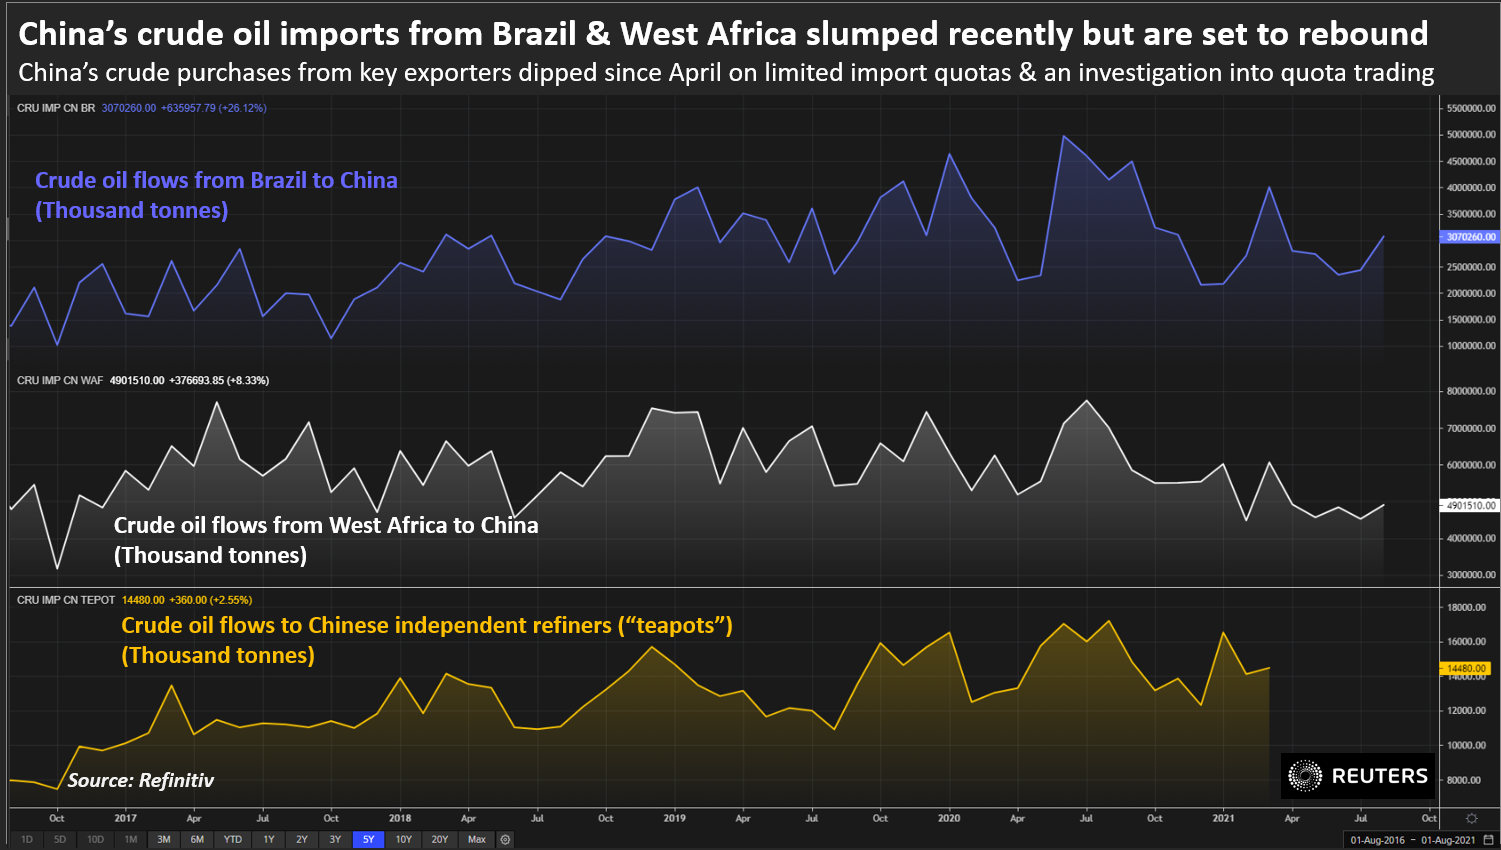 China's crude oil imports from Brazil & West Africa slumped recently but are set to rebound